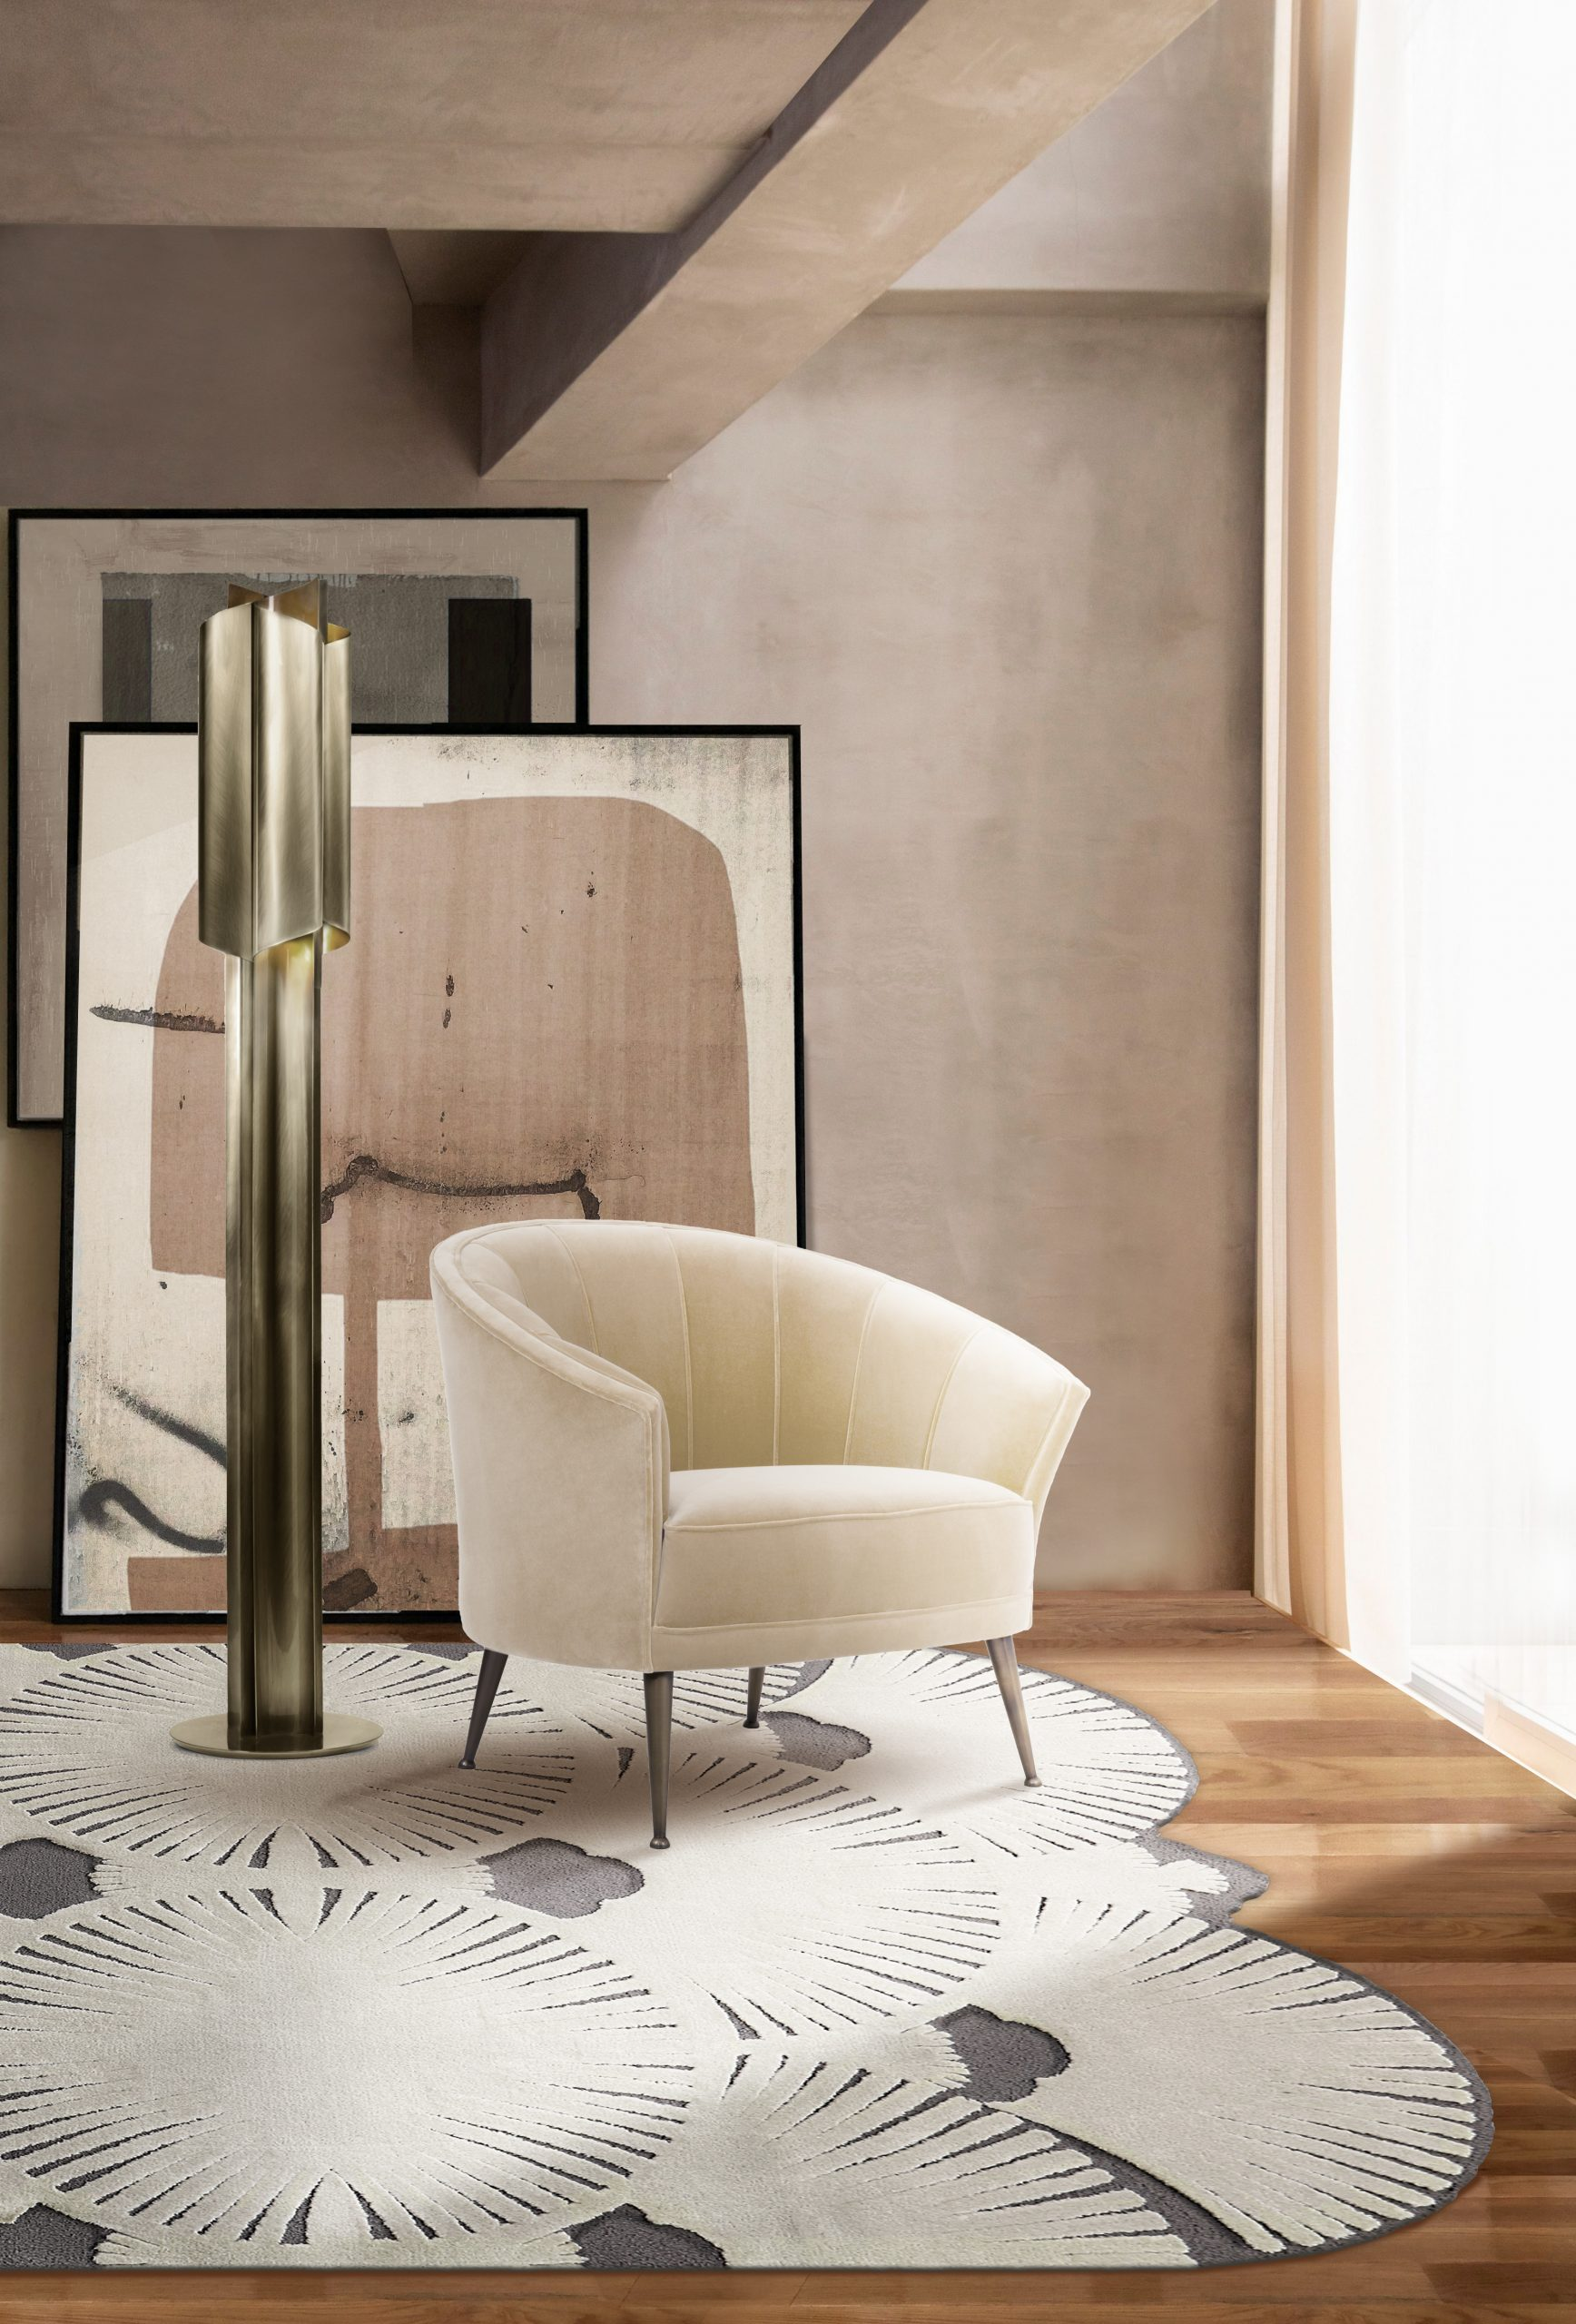 20 Modern Armchairs For A Bold And Timeless Design modern armchairs 20 Modern Armchairs For A Bold And Timeless Design 20 Modern Armchairs For A Bold And Timeless Design scaled